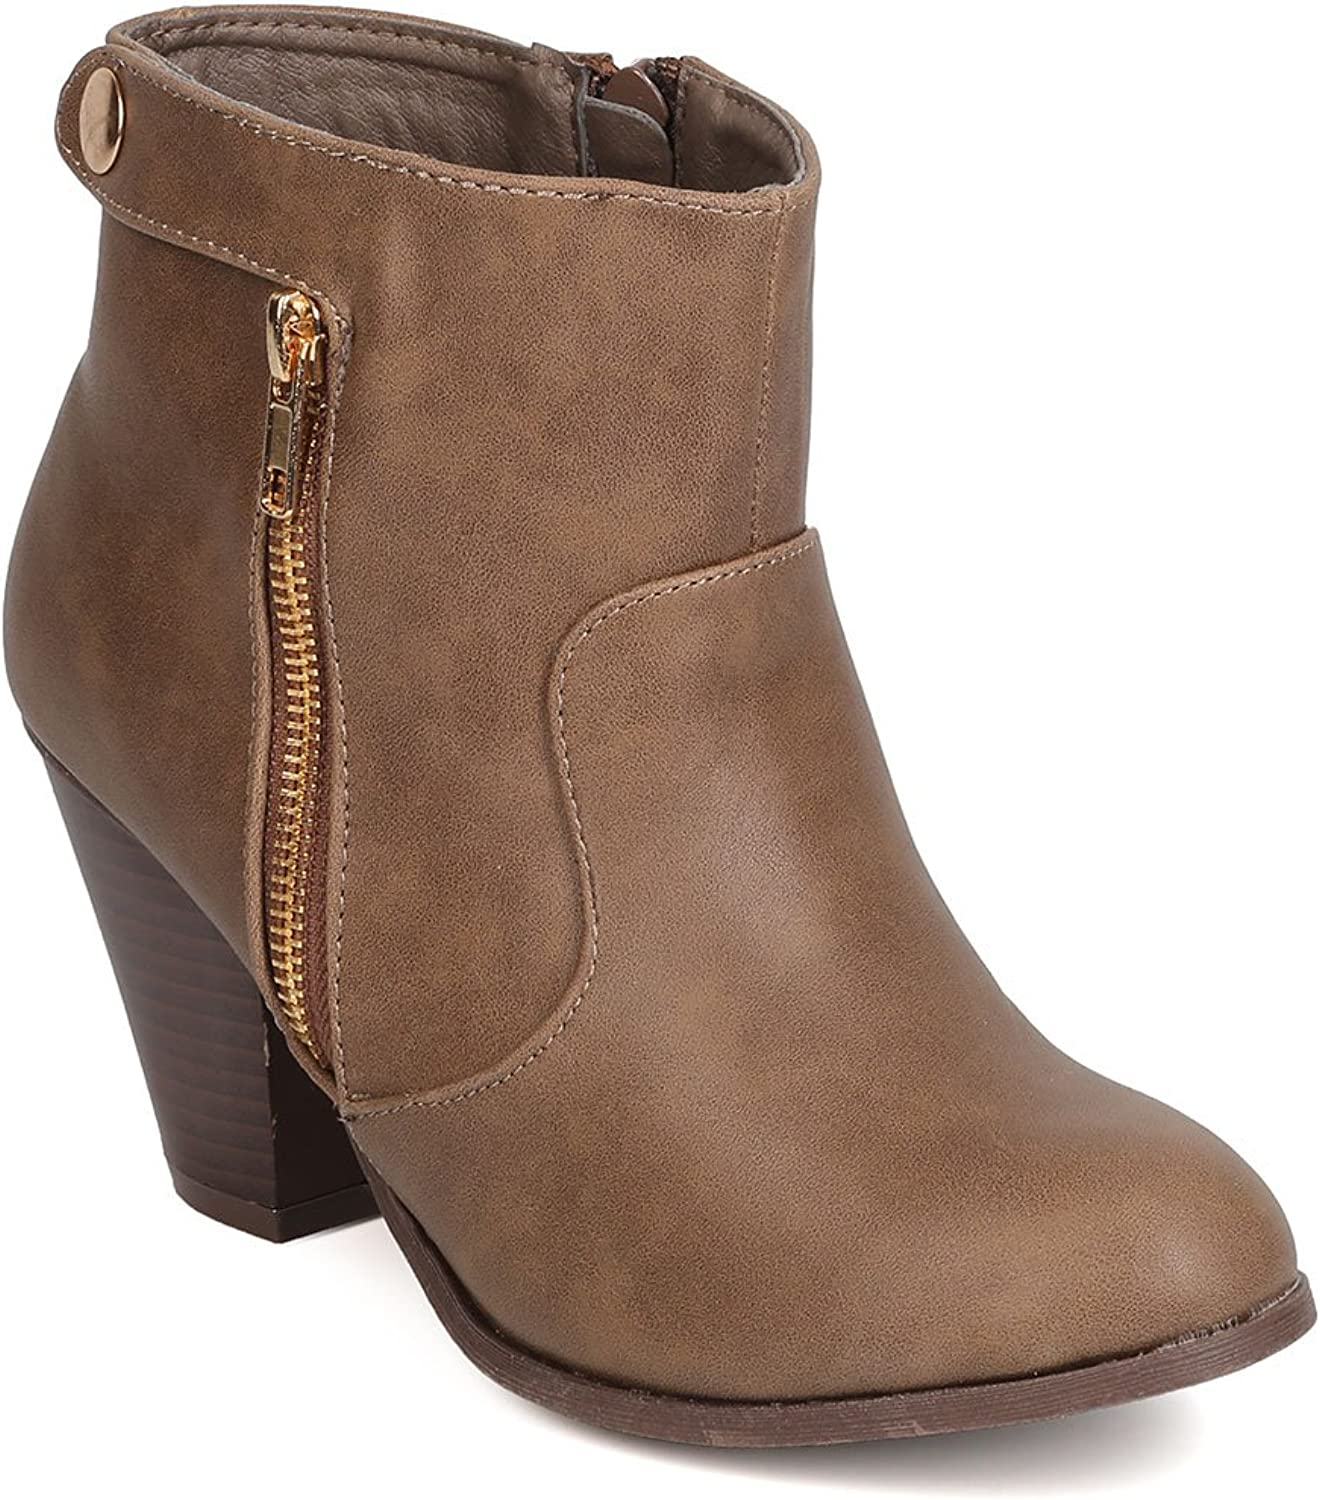 Nature Breeze FI88 Women Leatherette Chunky Heel Zippered Bootie - Taupe